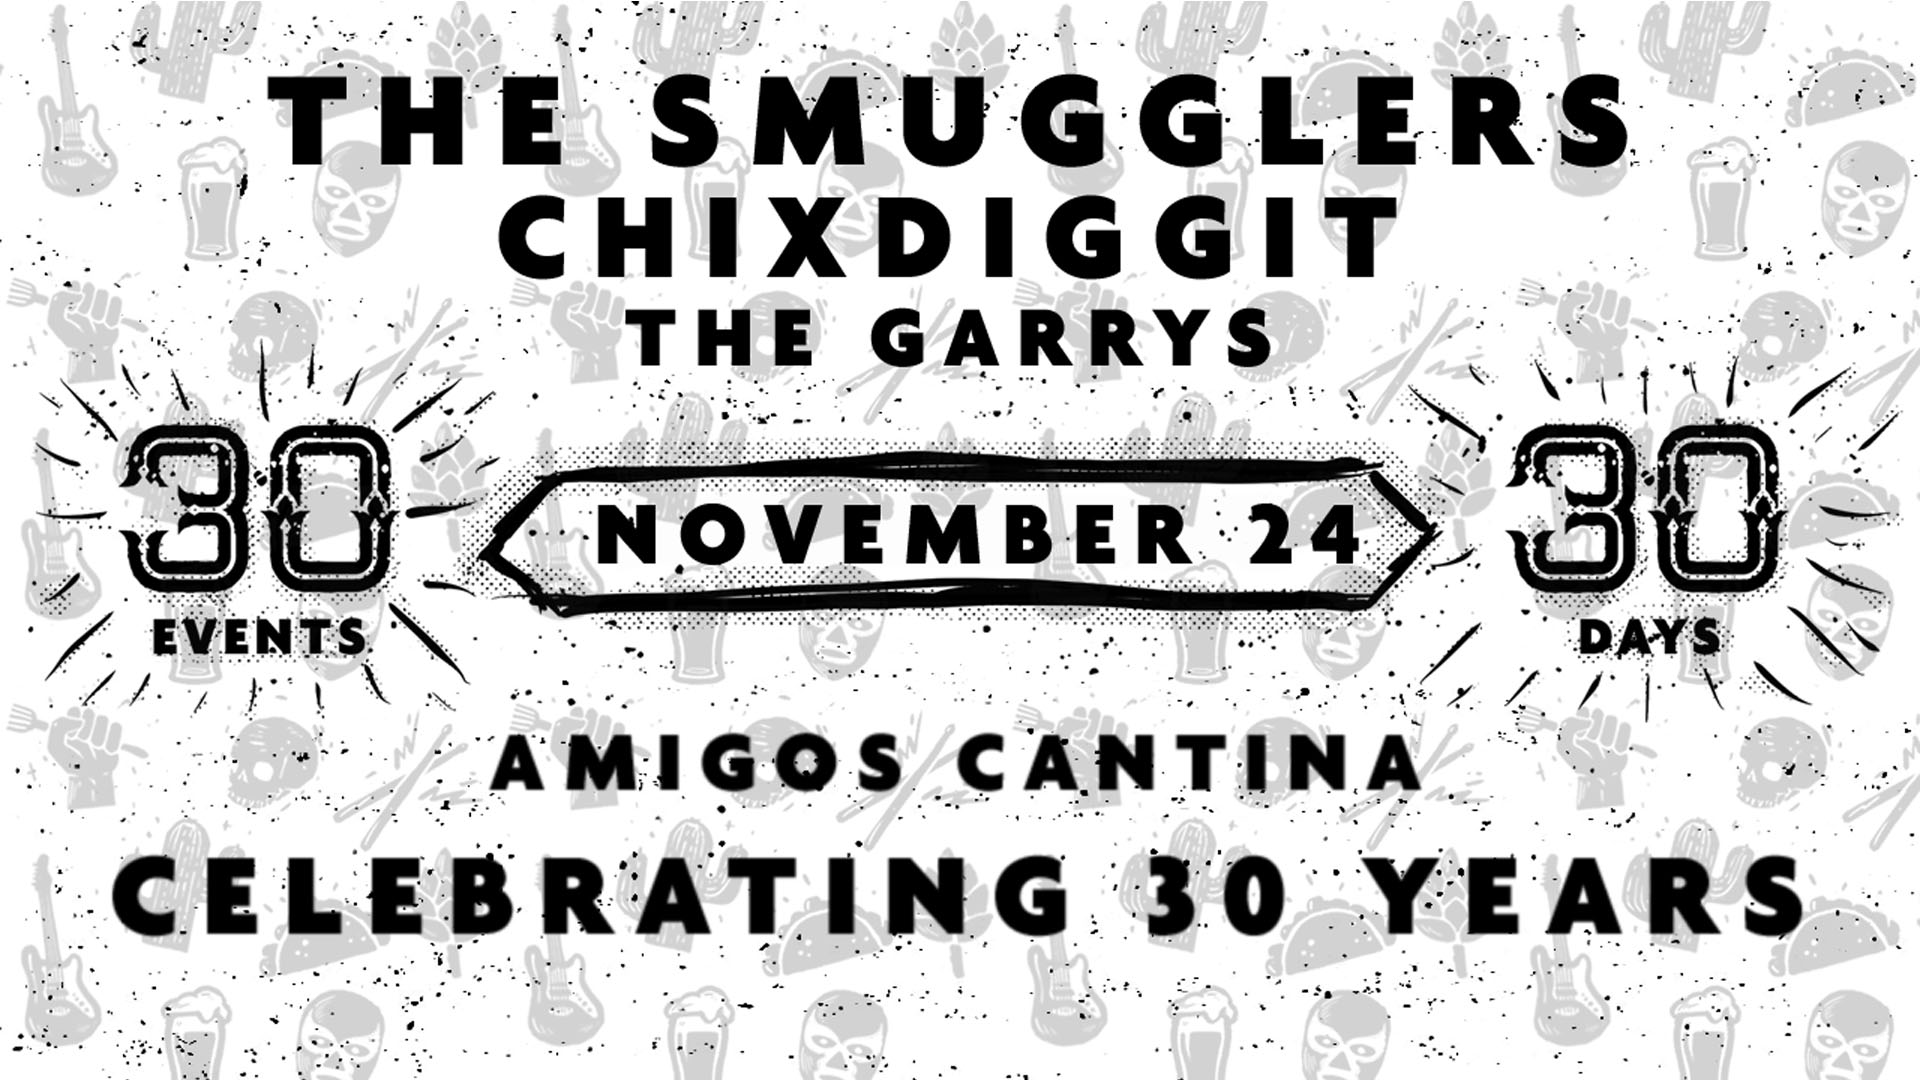 Amigos 30th Anniversary Show! The Smugglers, Chixdiggit, The Garrys